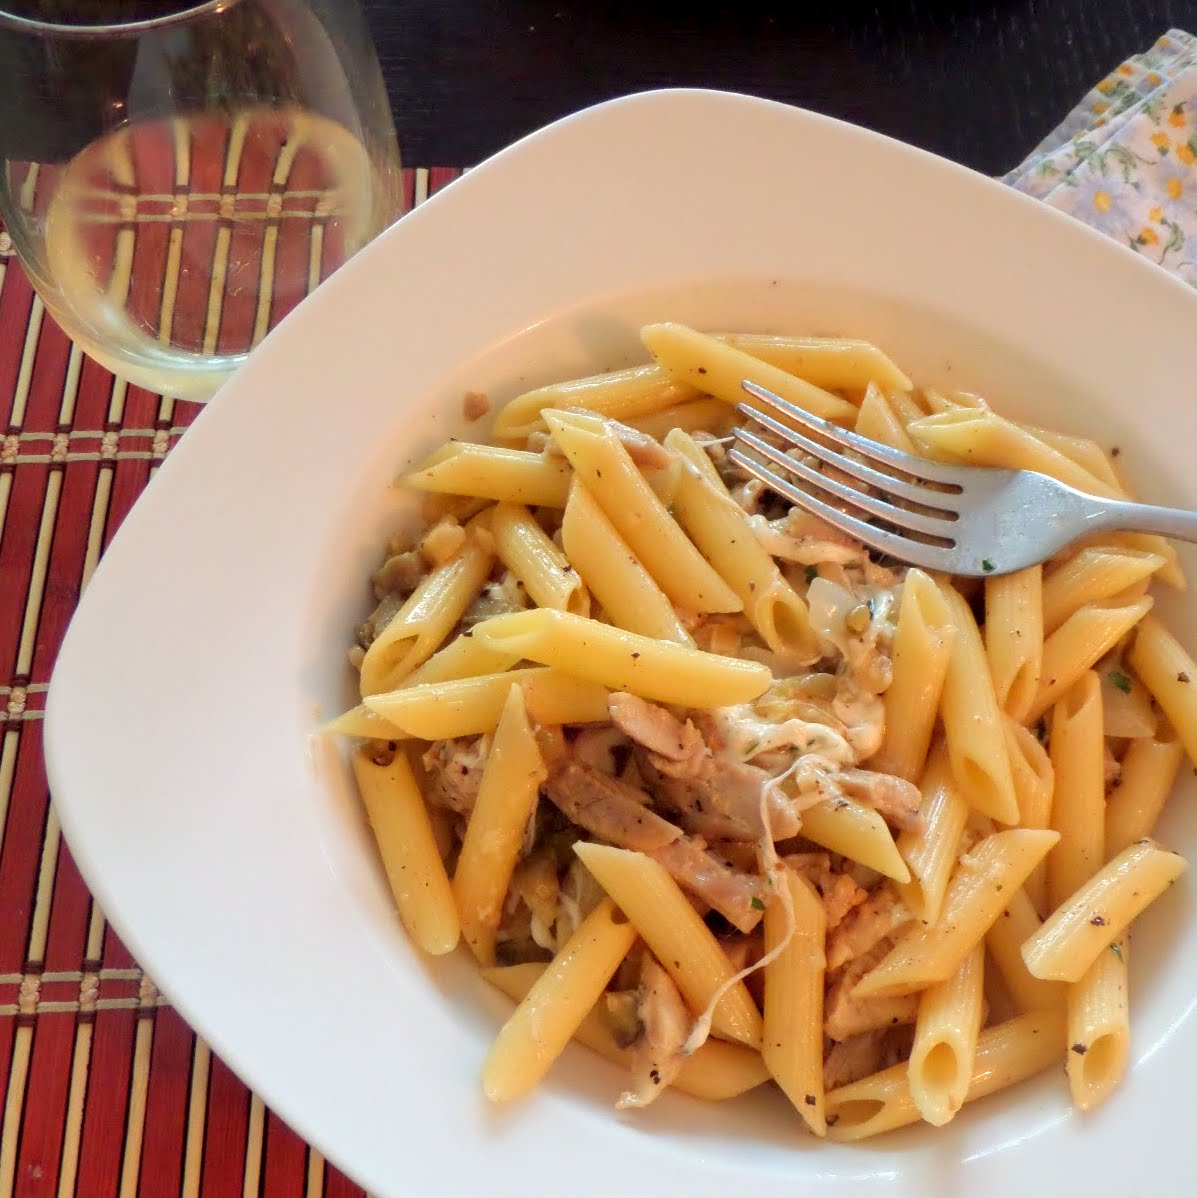 ... Penne: Penne with chicken, garlic, and cheese in a white wine sauce